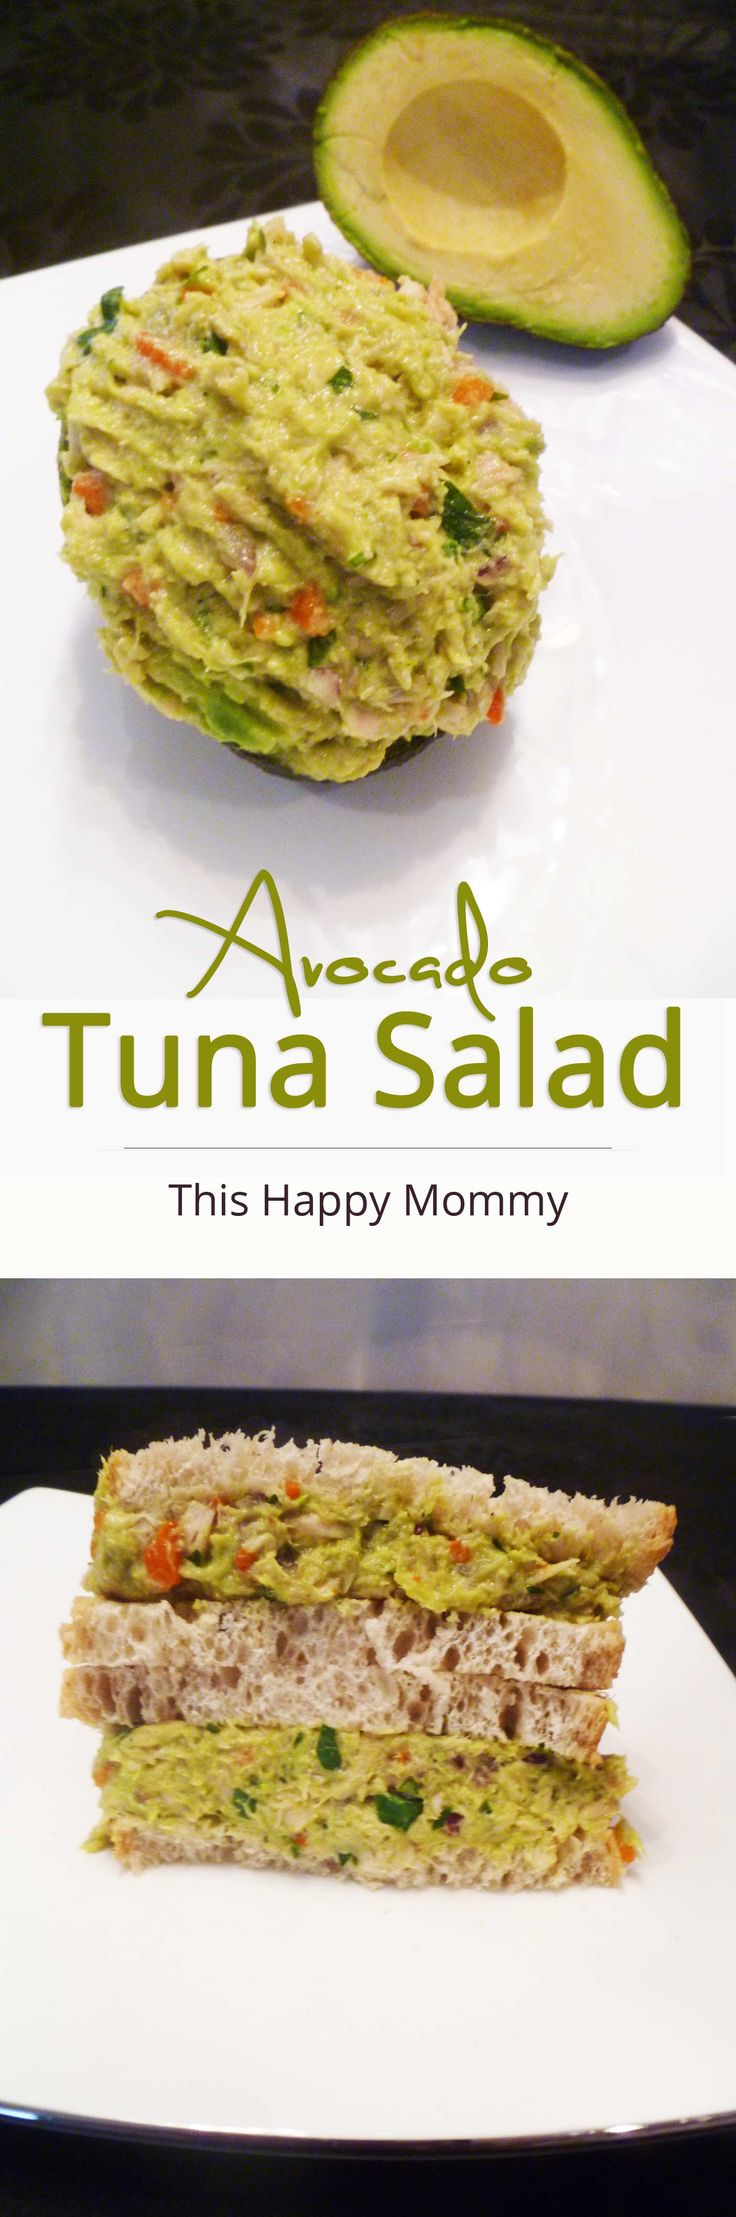 Guacamole inspired tuna salad made with creamy avocados, red onions, lime, cilantro and roasted red peppers. | thishappymommy.com